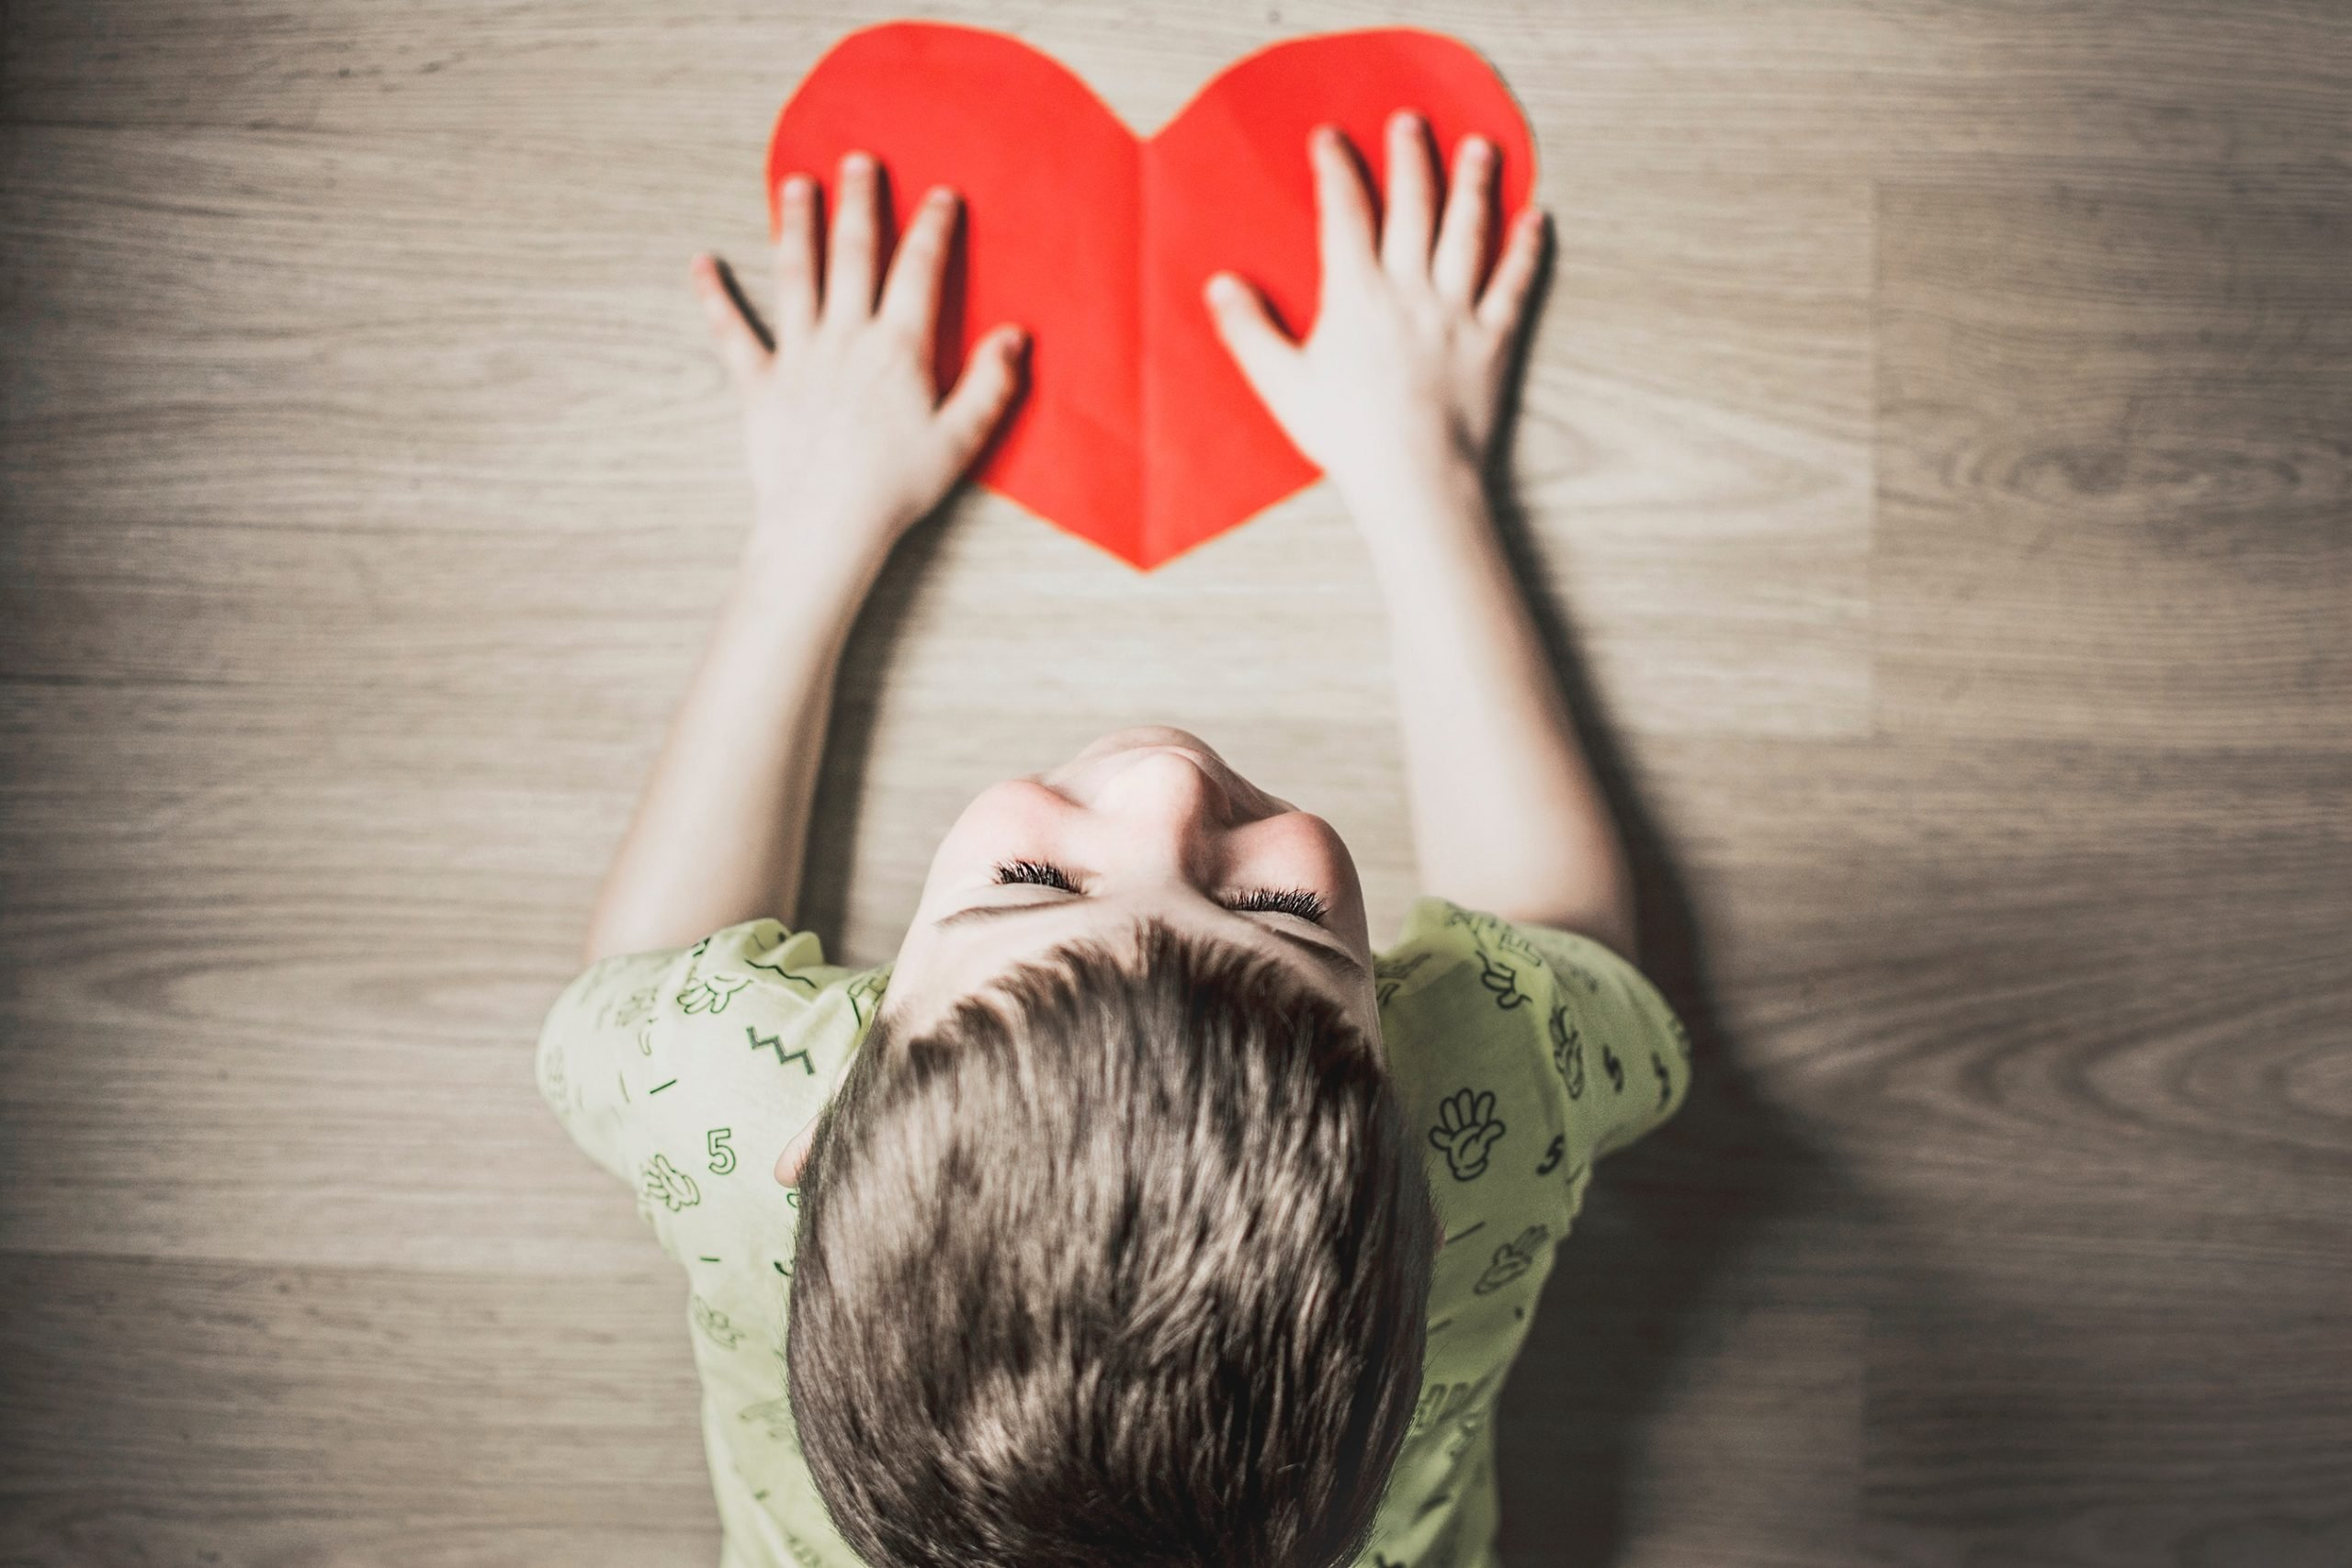 boy with cut-out paper heart on wooden floor